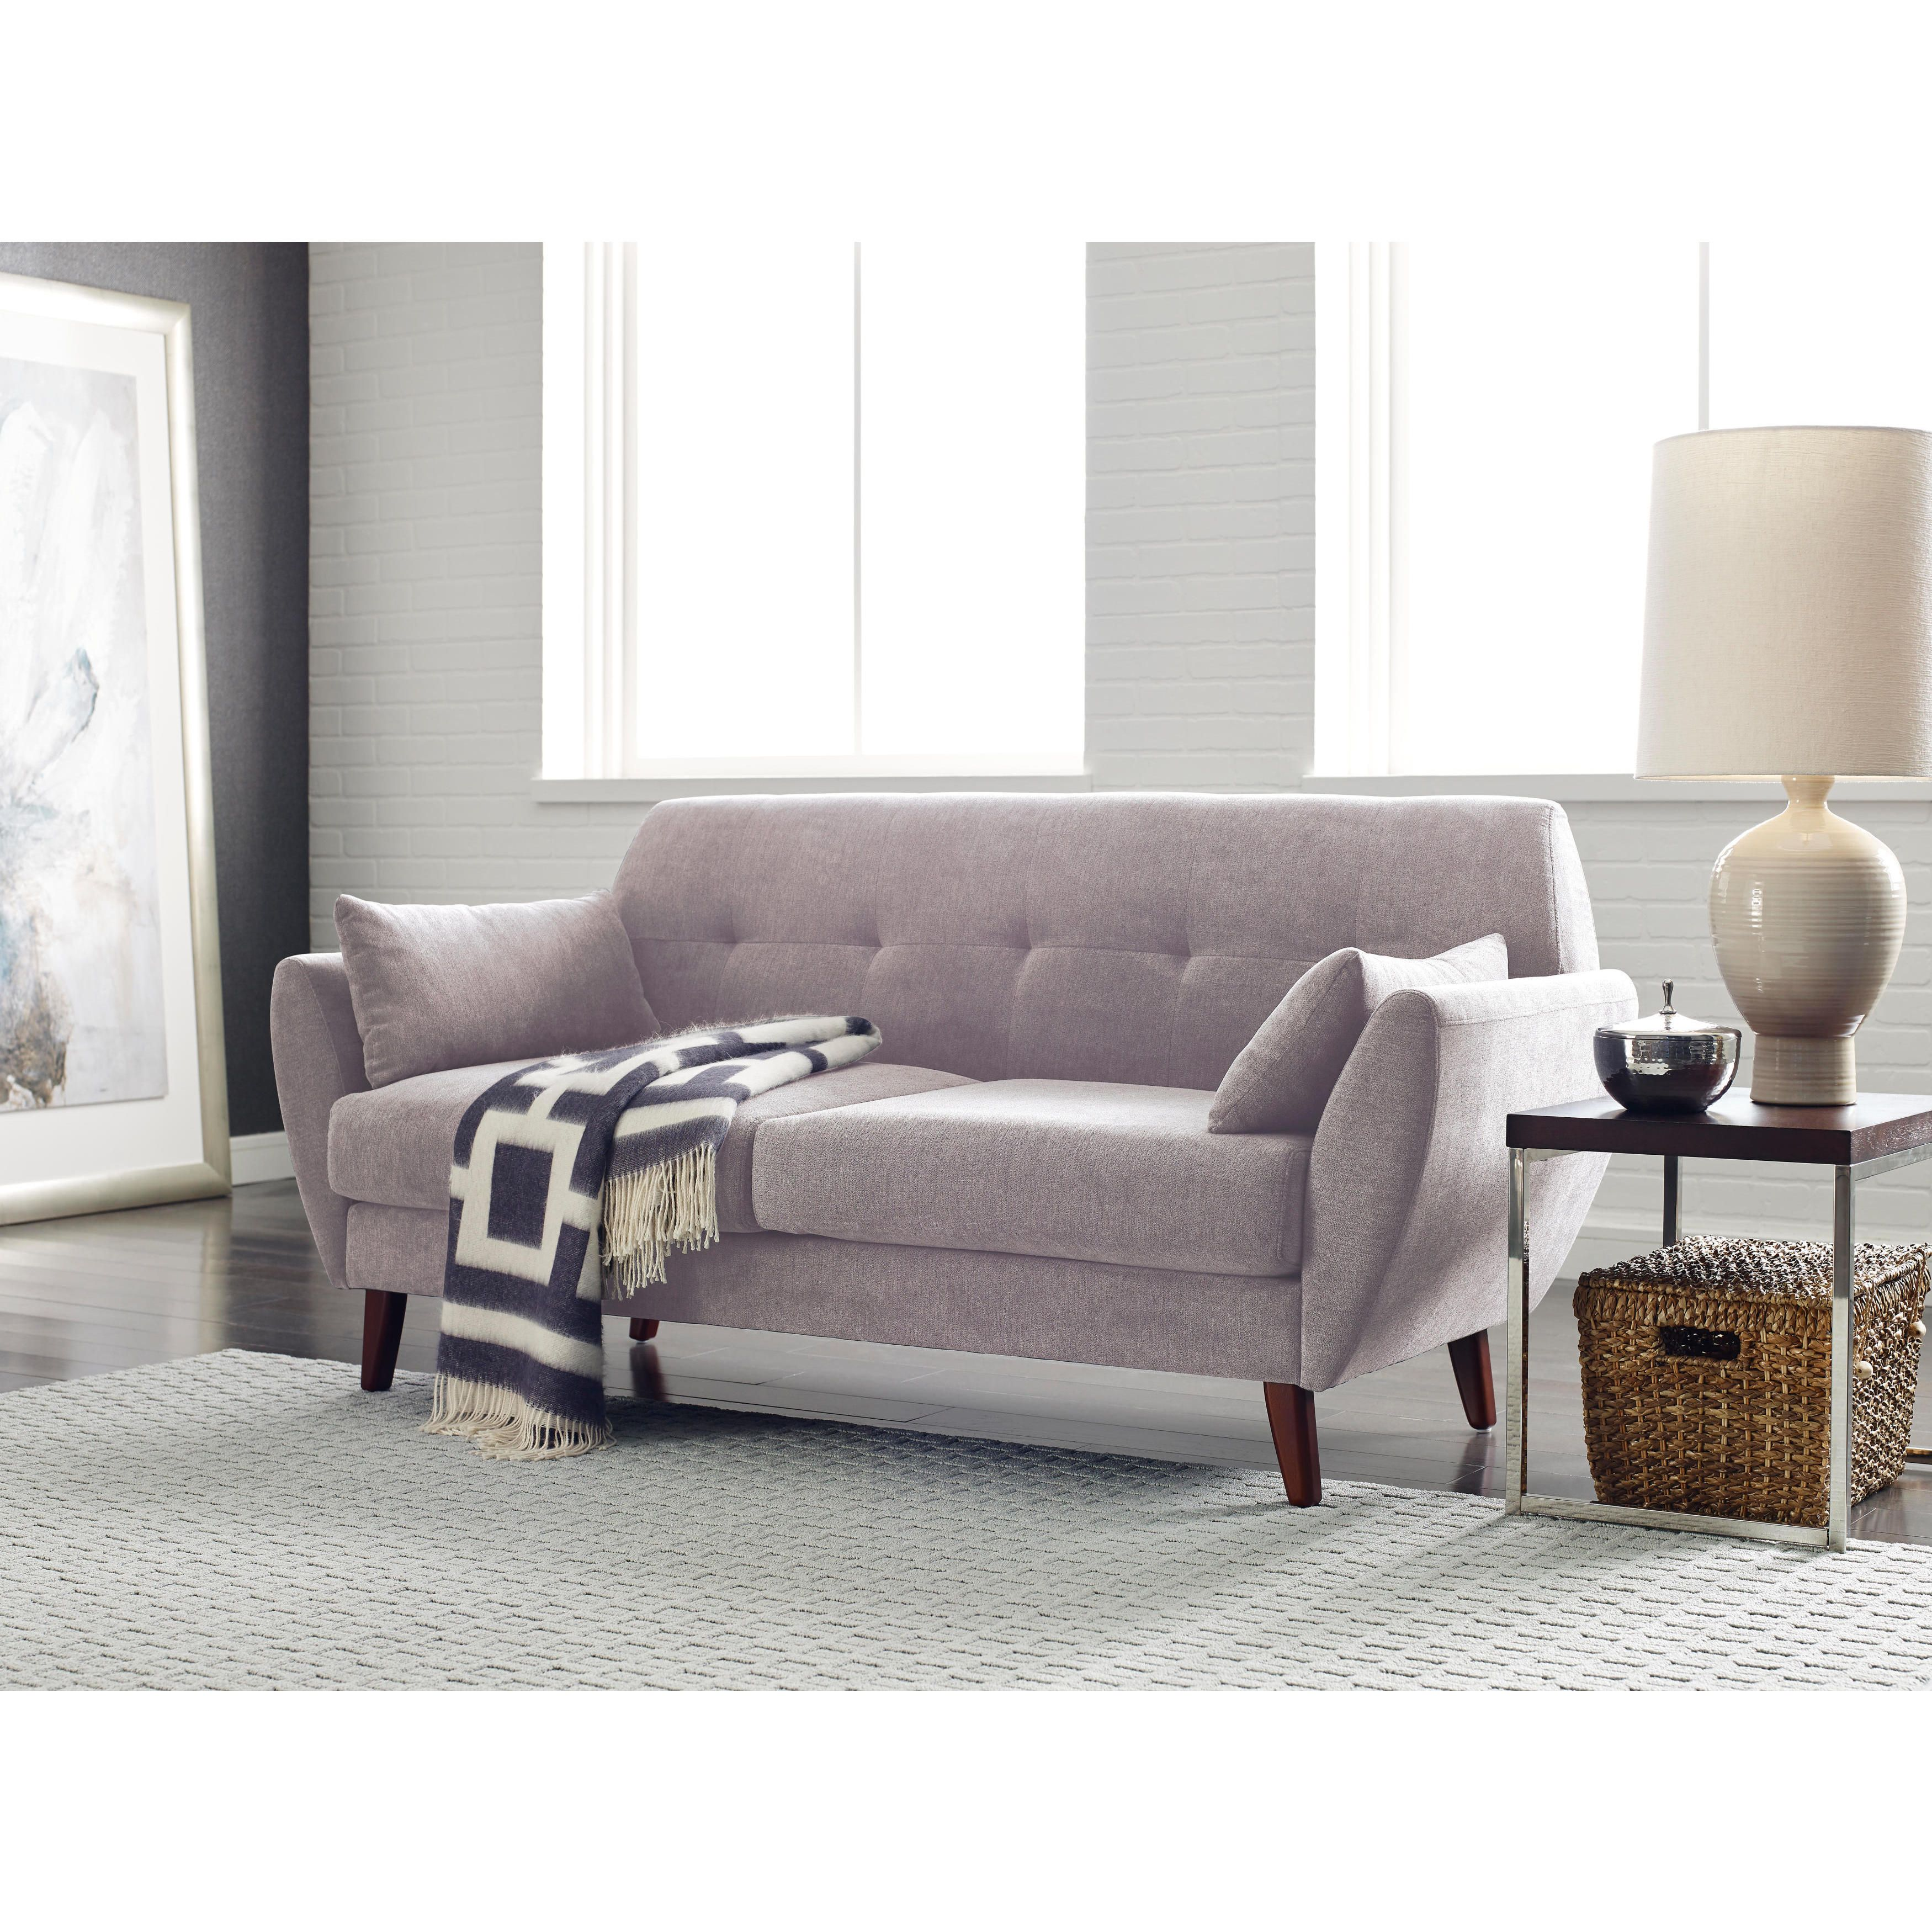 Serta artesia collection 73 sofa serta artesia collection 73 sofa in slate gray grey microfiber